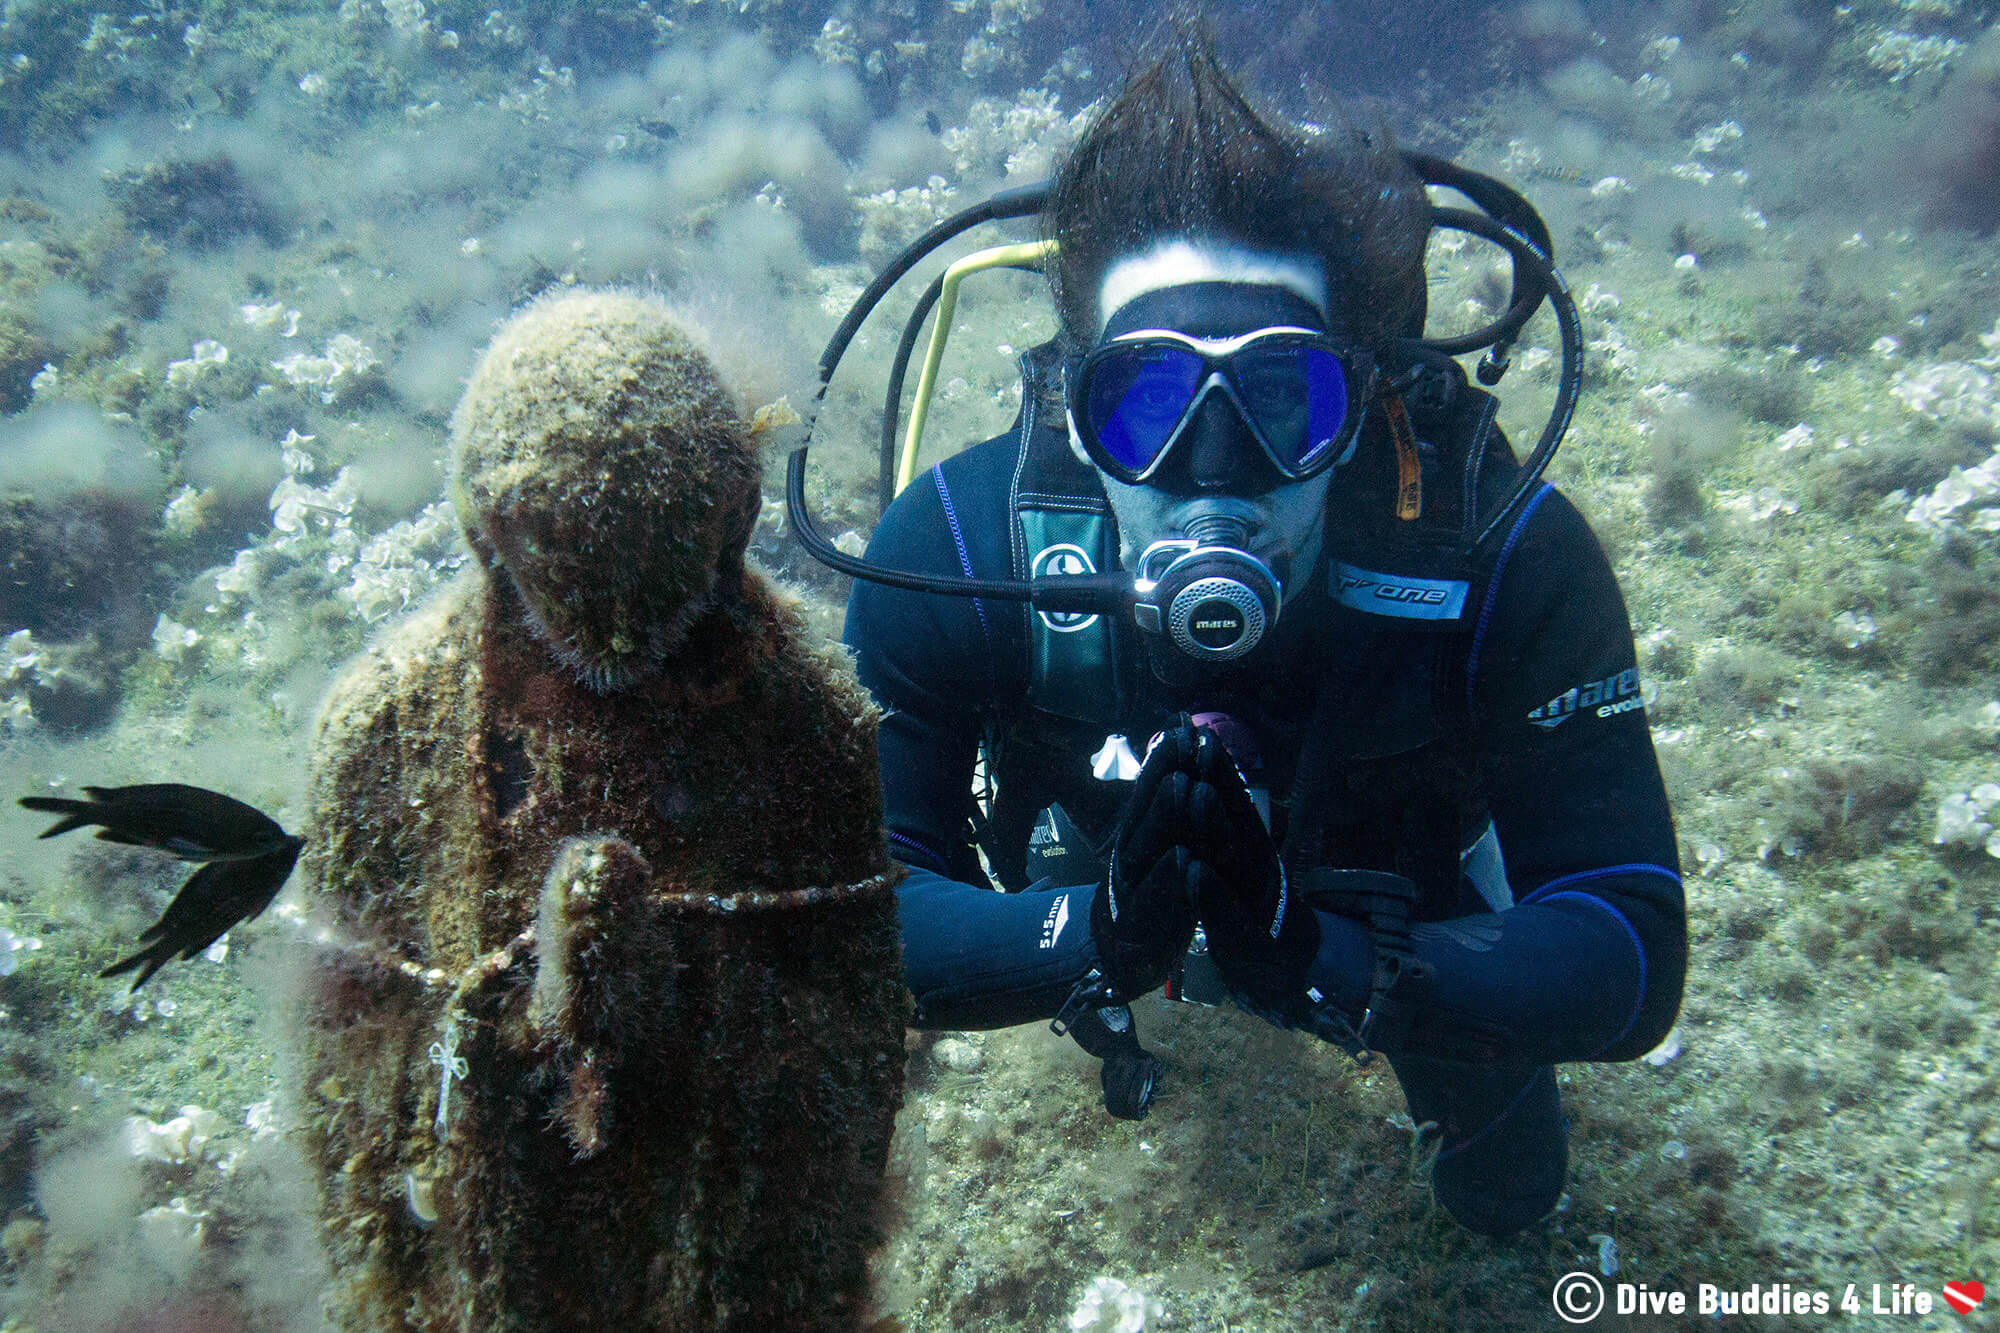 Visiting The Submerged Mary Statue With Scuba Gear In Sorrento, Italy